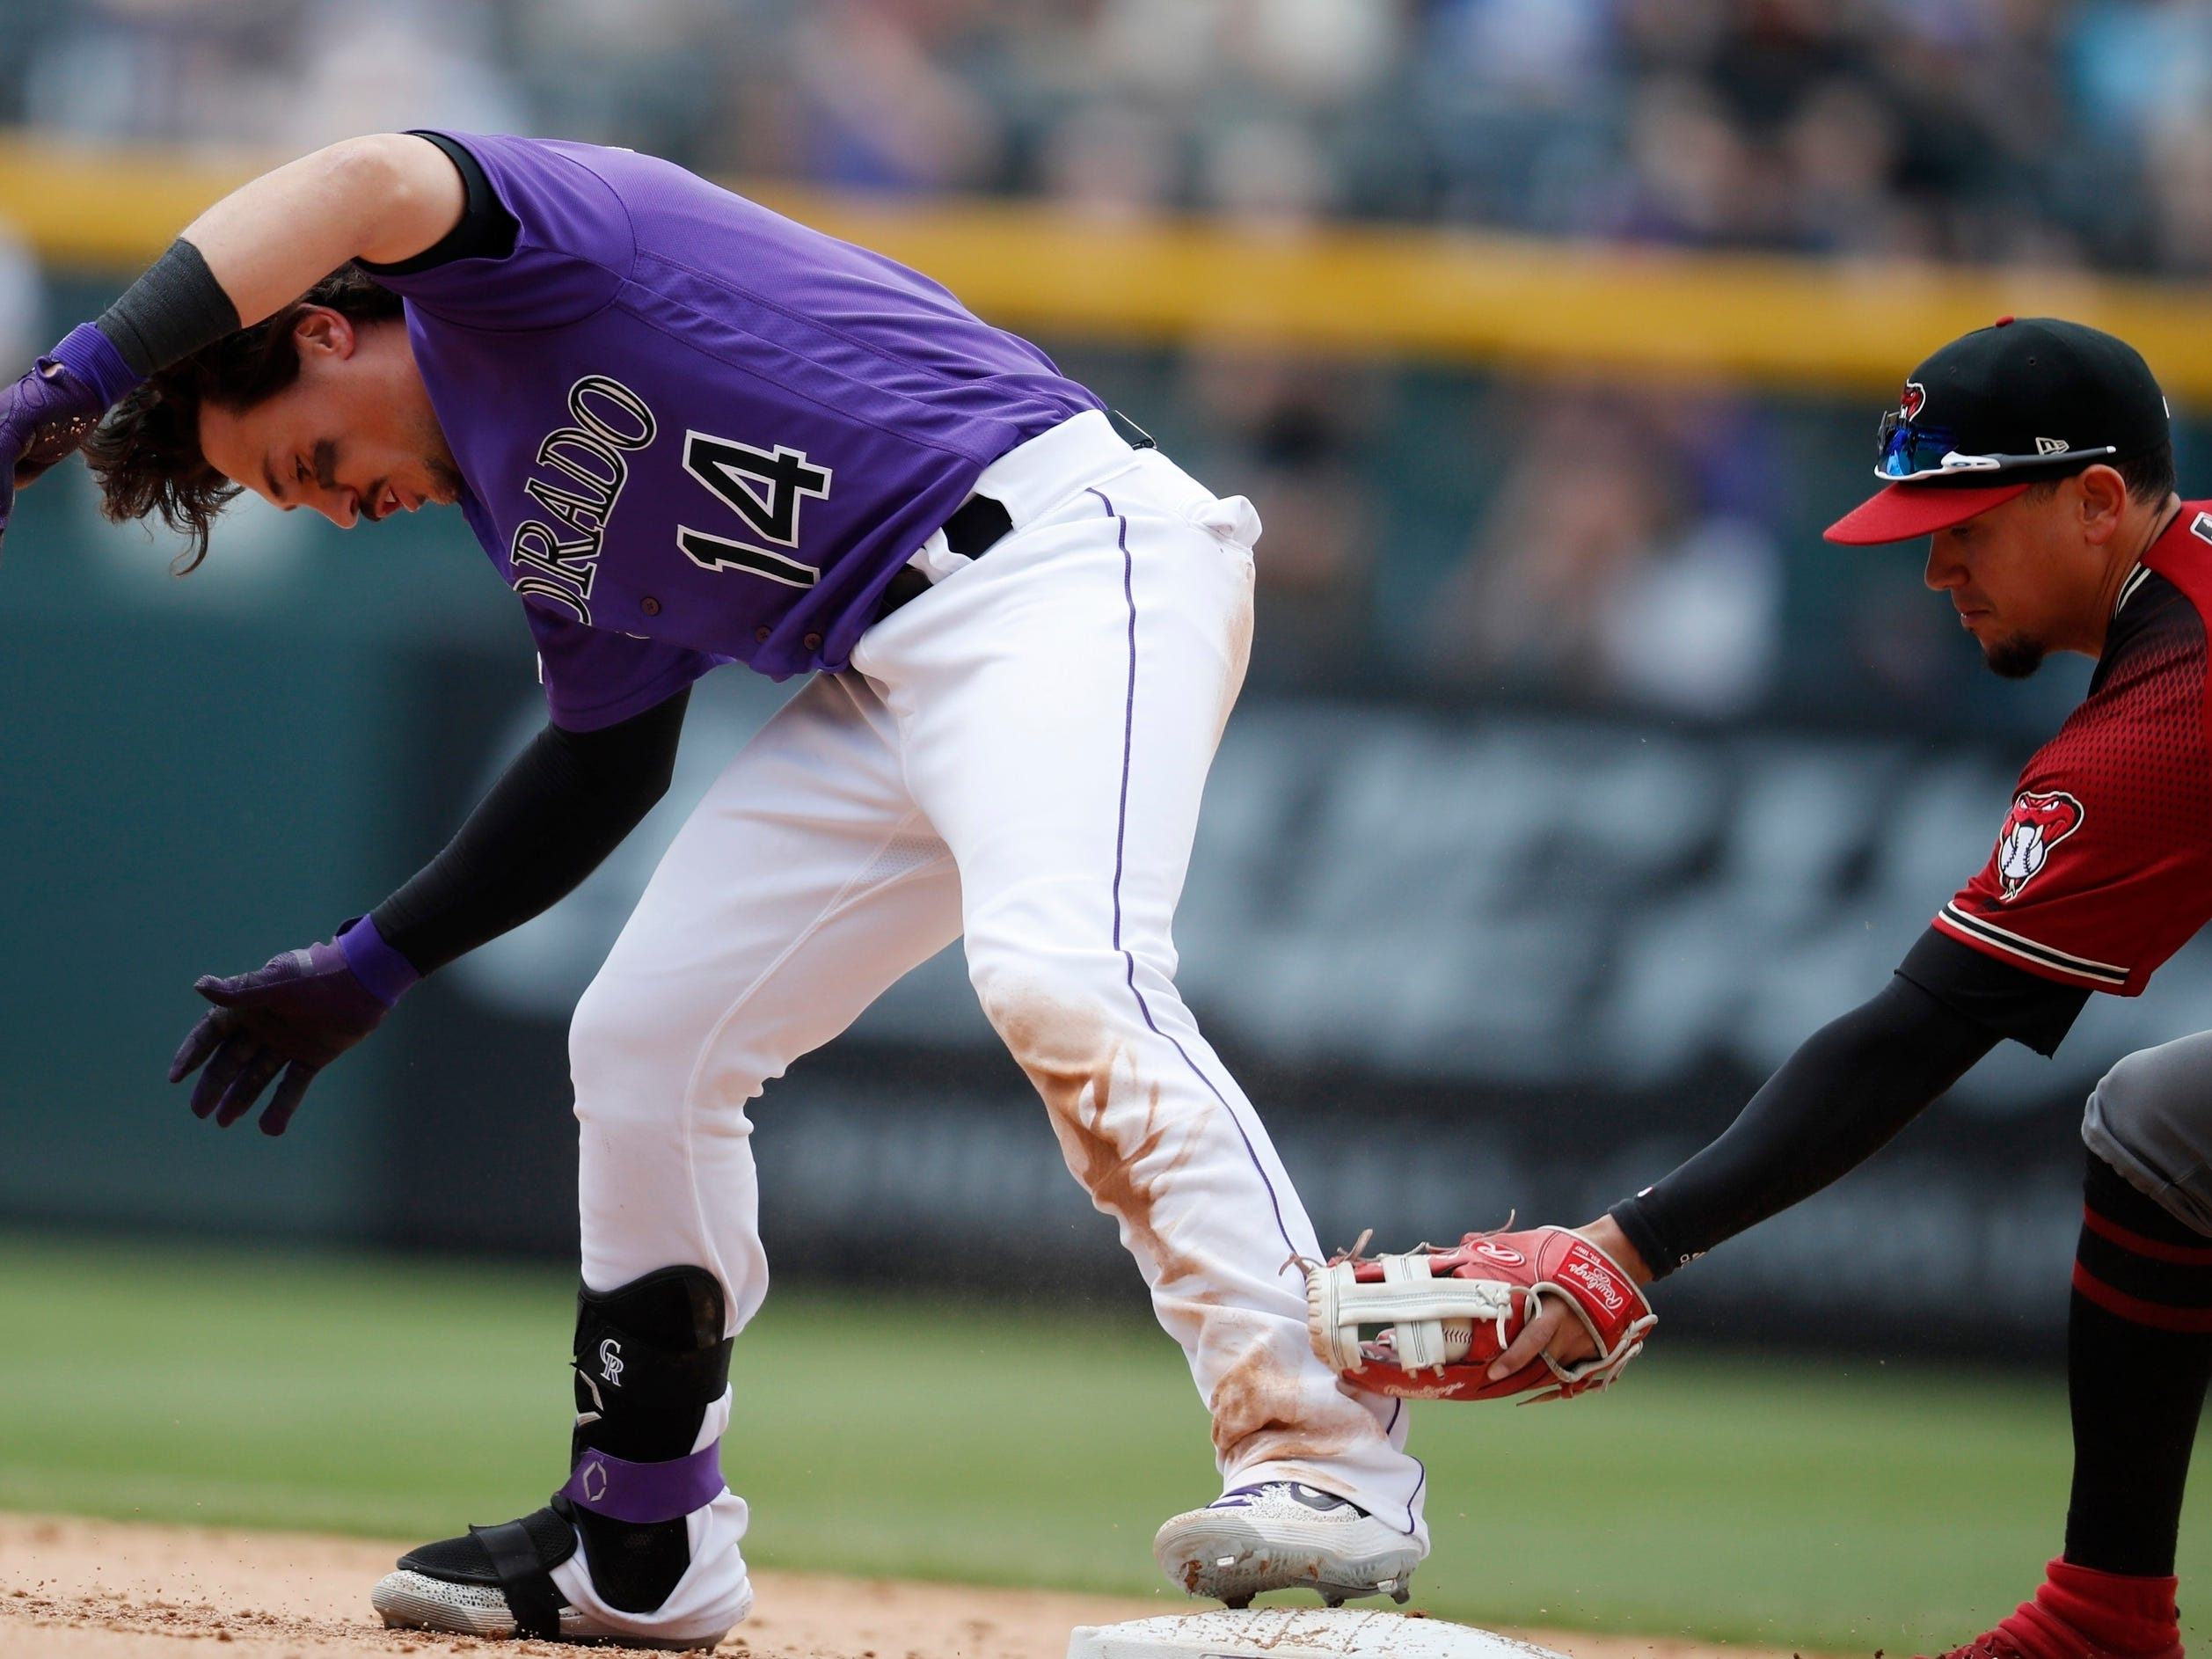 Colorado Rockies' Tony Wolters, left, reaches second base with a double as Arizona Diamondbacks second baseman Ildemaro Vargas applies a late tag in the fifth inning of a baseball game Sunday, May 5, 2019, in Denver. (AP Photo/David Zalubowski)